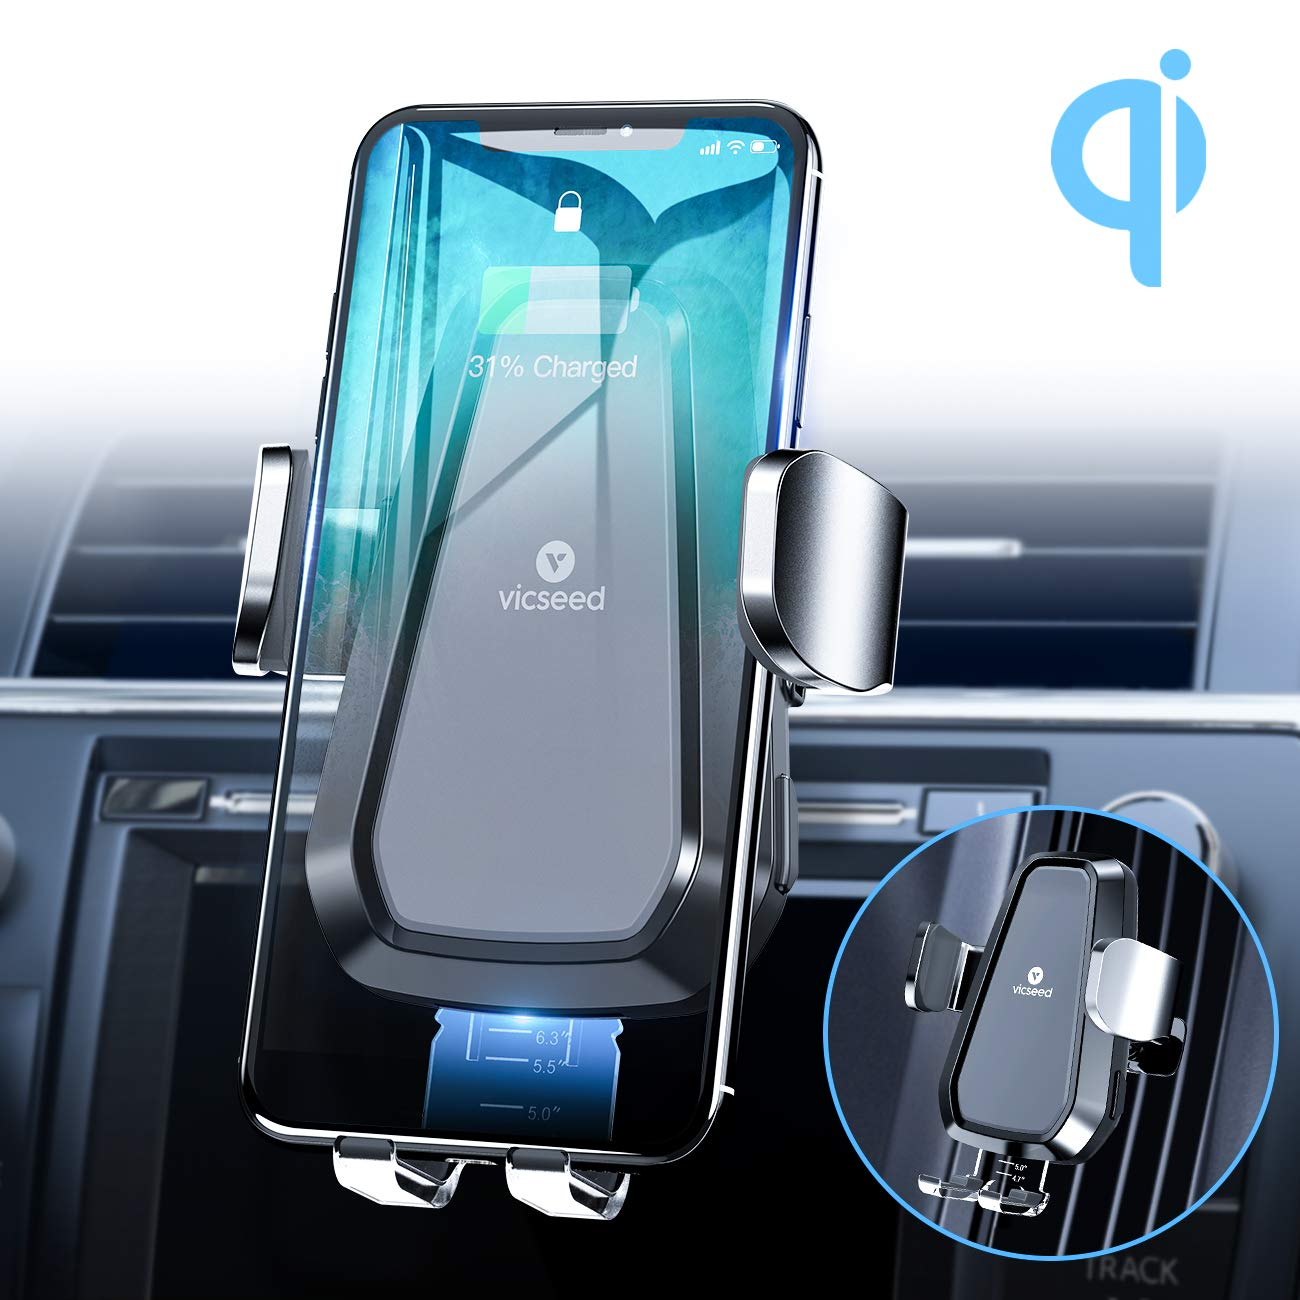 VICSEED Wireless Car Charger Mount, 2019 Newest Auto-Clamping Car Phone Holder, CD Slot & Air Vent Qi Fast Wireless Car Charger for iPhone 11 Pro Xs Max Xs Xr 8 8 Plus Samsung Galaxy Note 10 S9 S8 by VICSEED